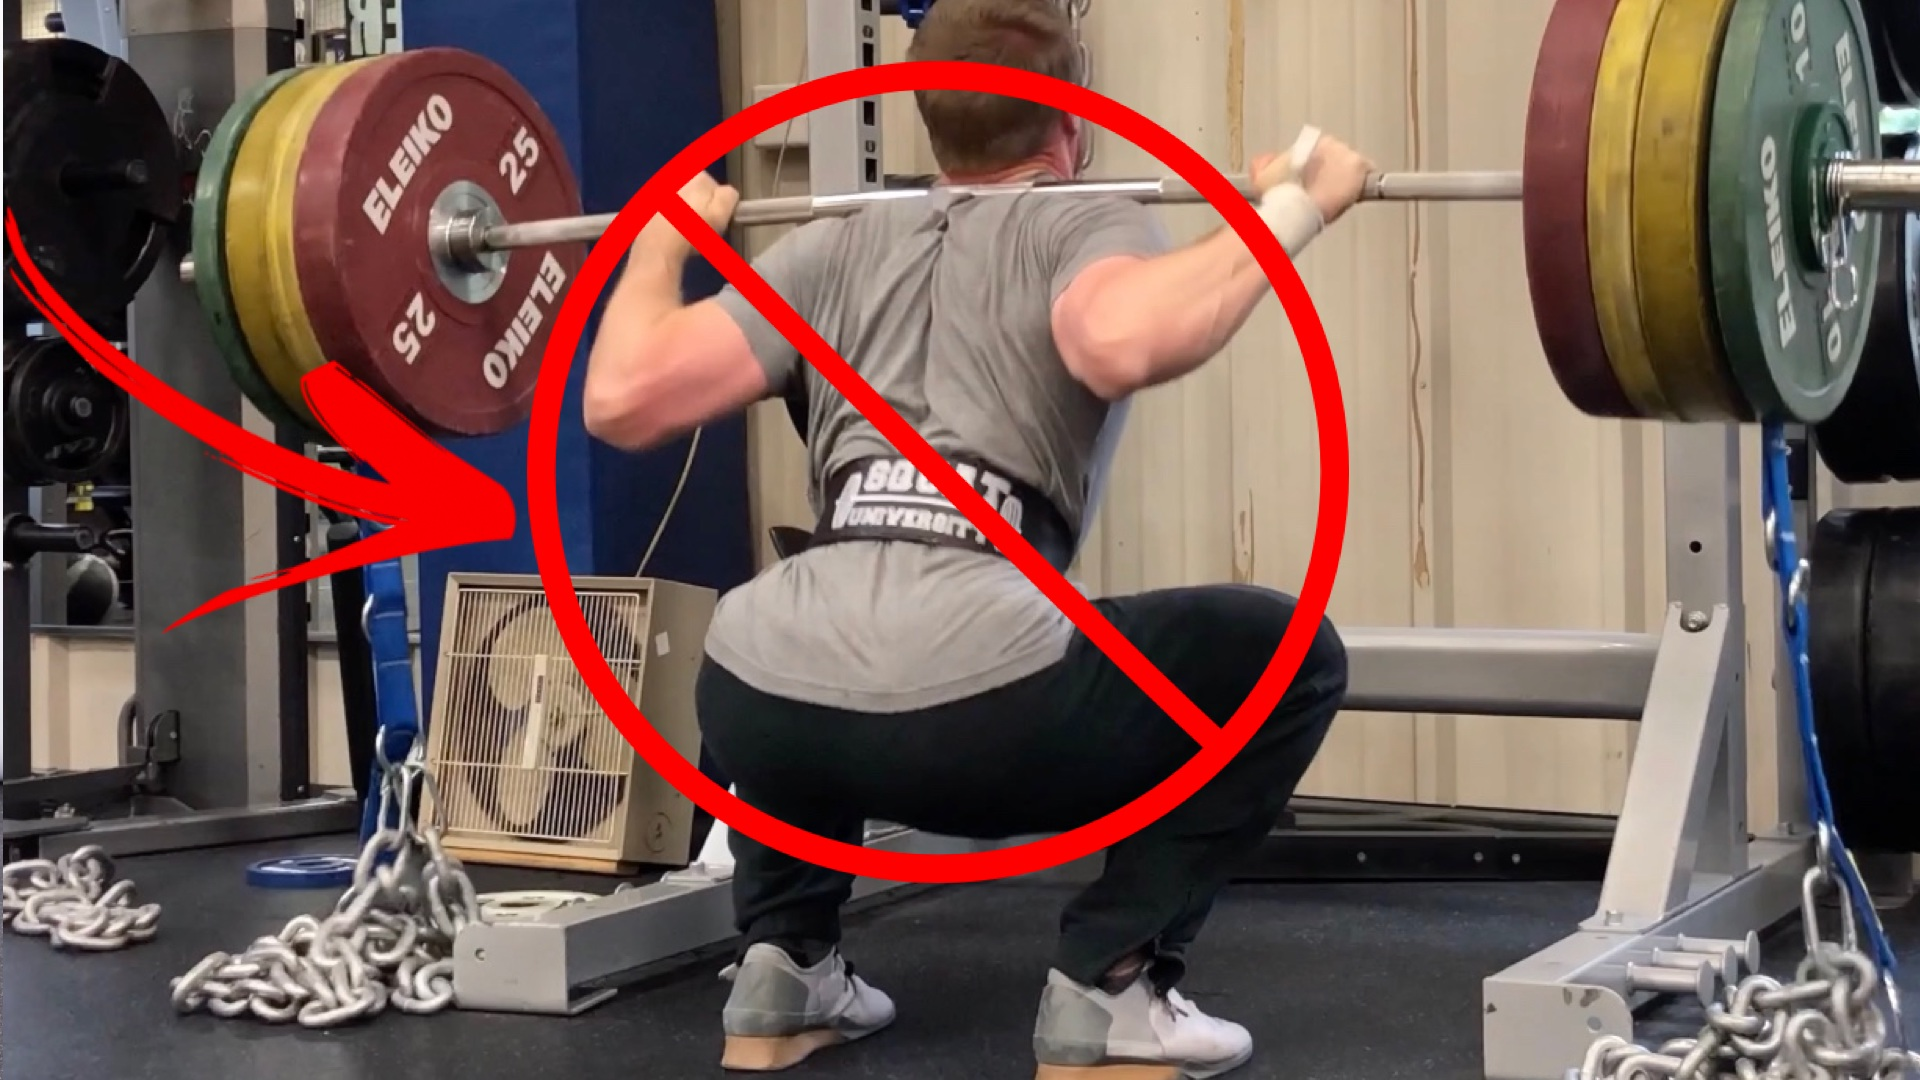 PREVENTION OF INJURIES AND WEAR when squatting